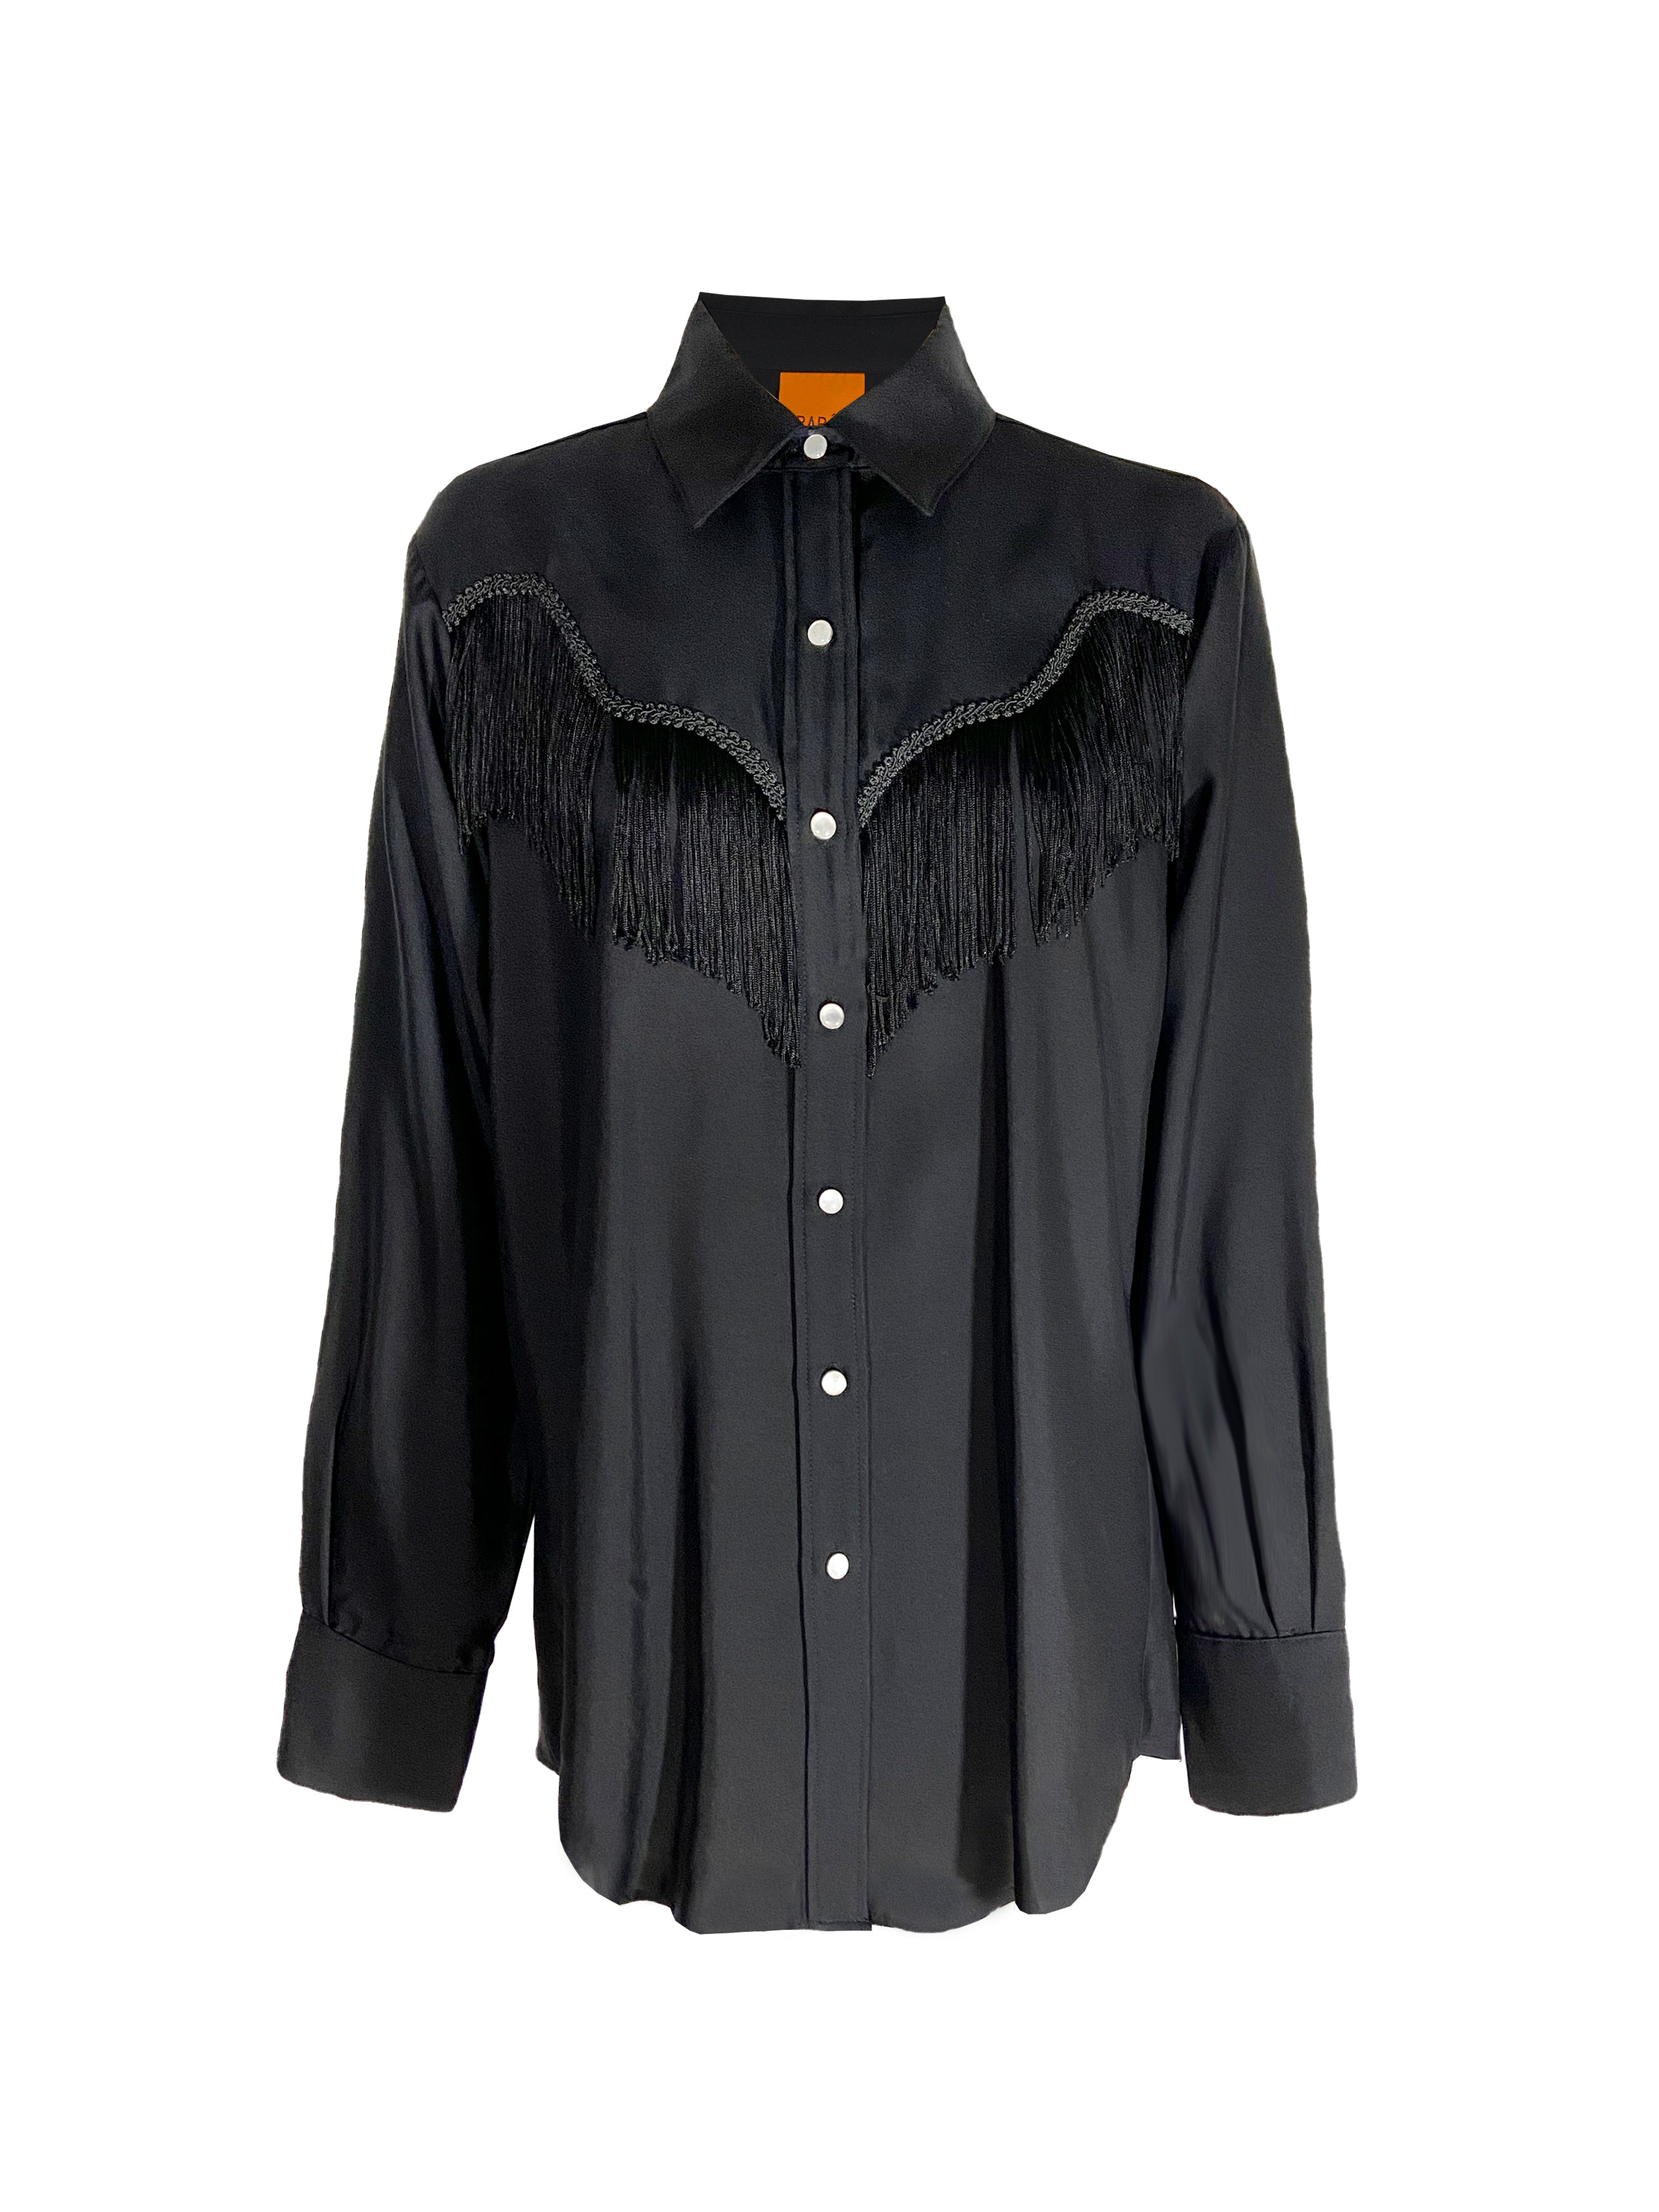 Oversized black silk fringe shirt